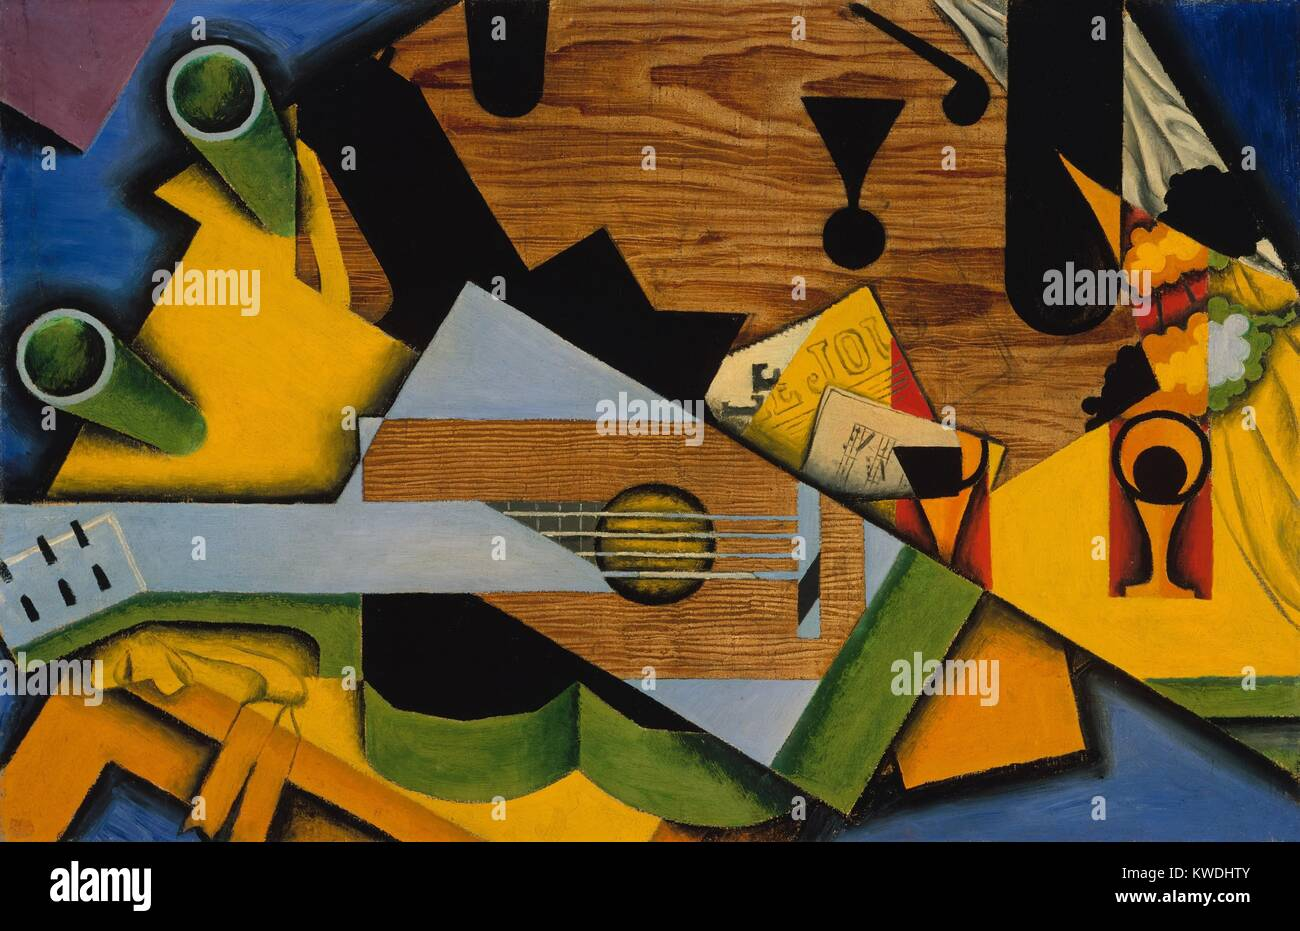 STILL LIFE WITH A GUITAR, by Juan Gris, 1913, Spanish Cubist painting, oil on canvas. This work is strongly influenced - Stock Image